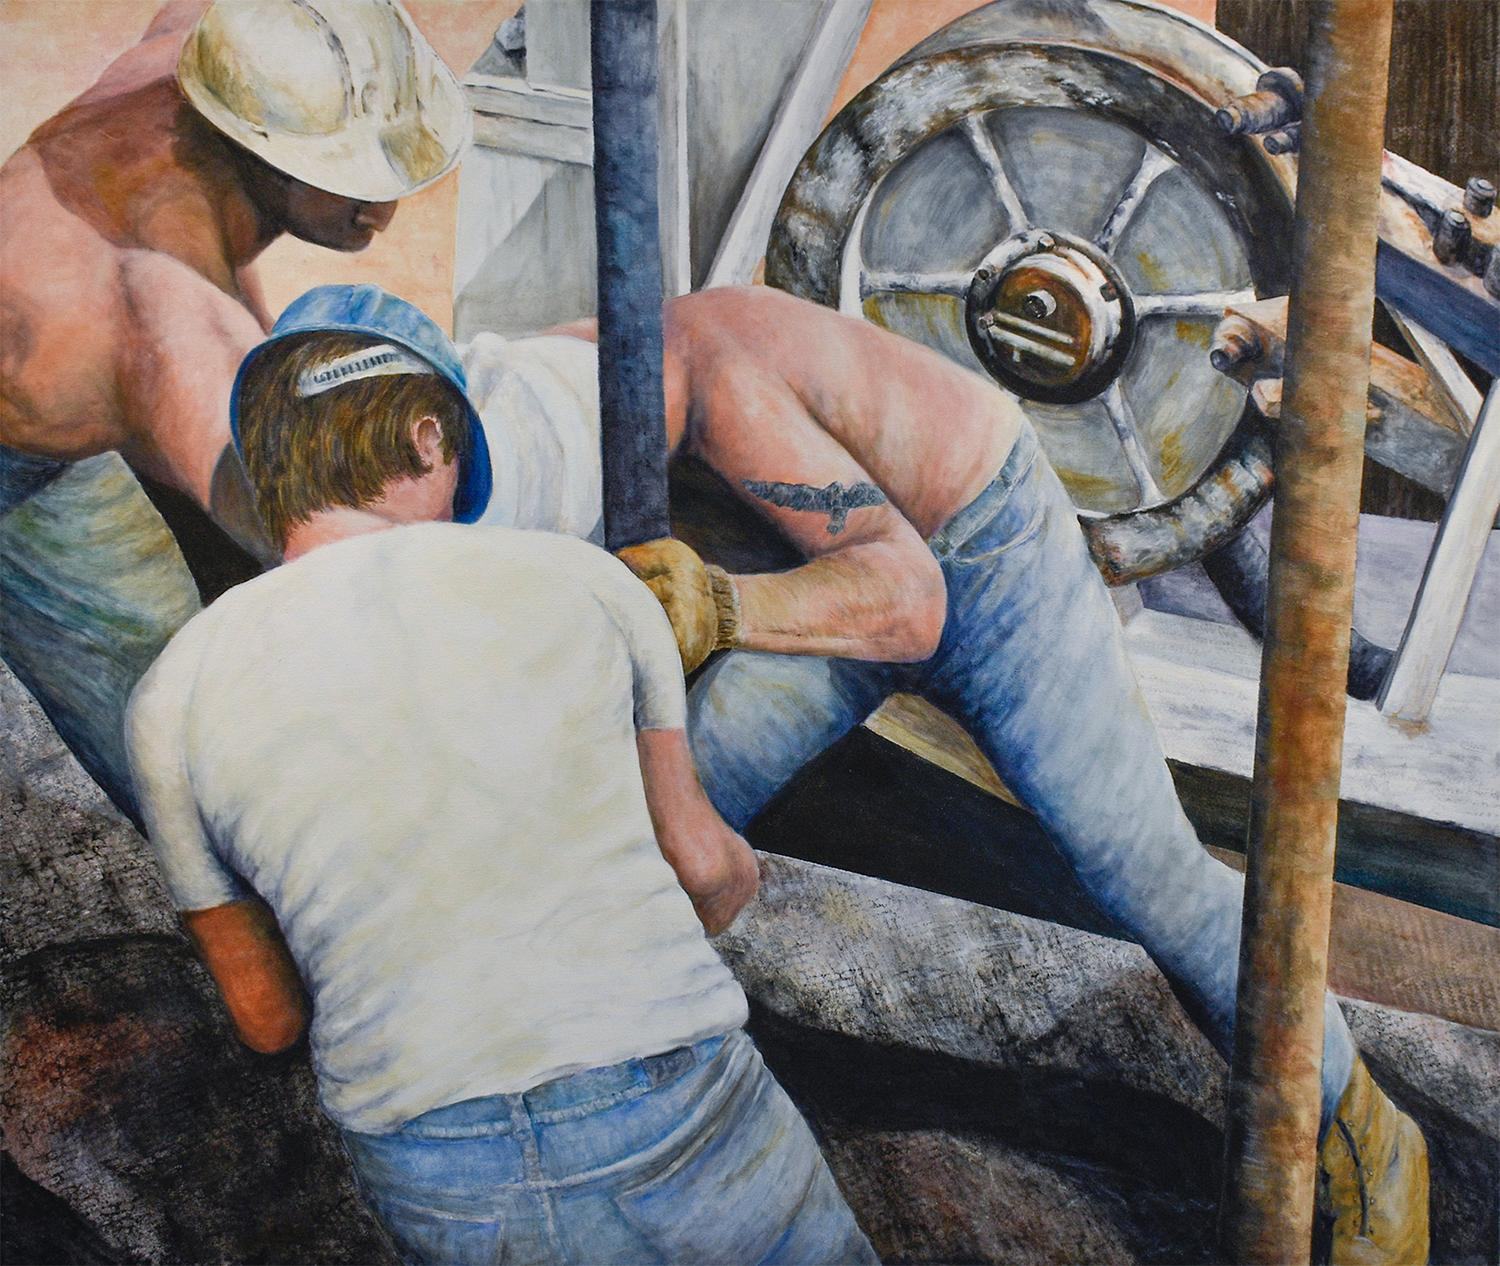 Men At Work 11: Figurative Oil Painting of Construction Workers in Sky Blue